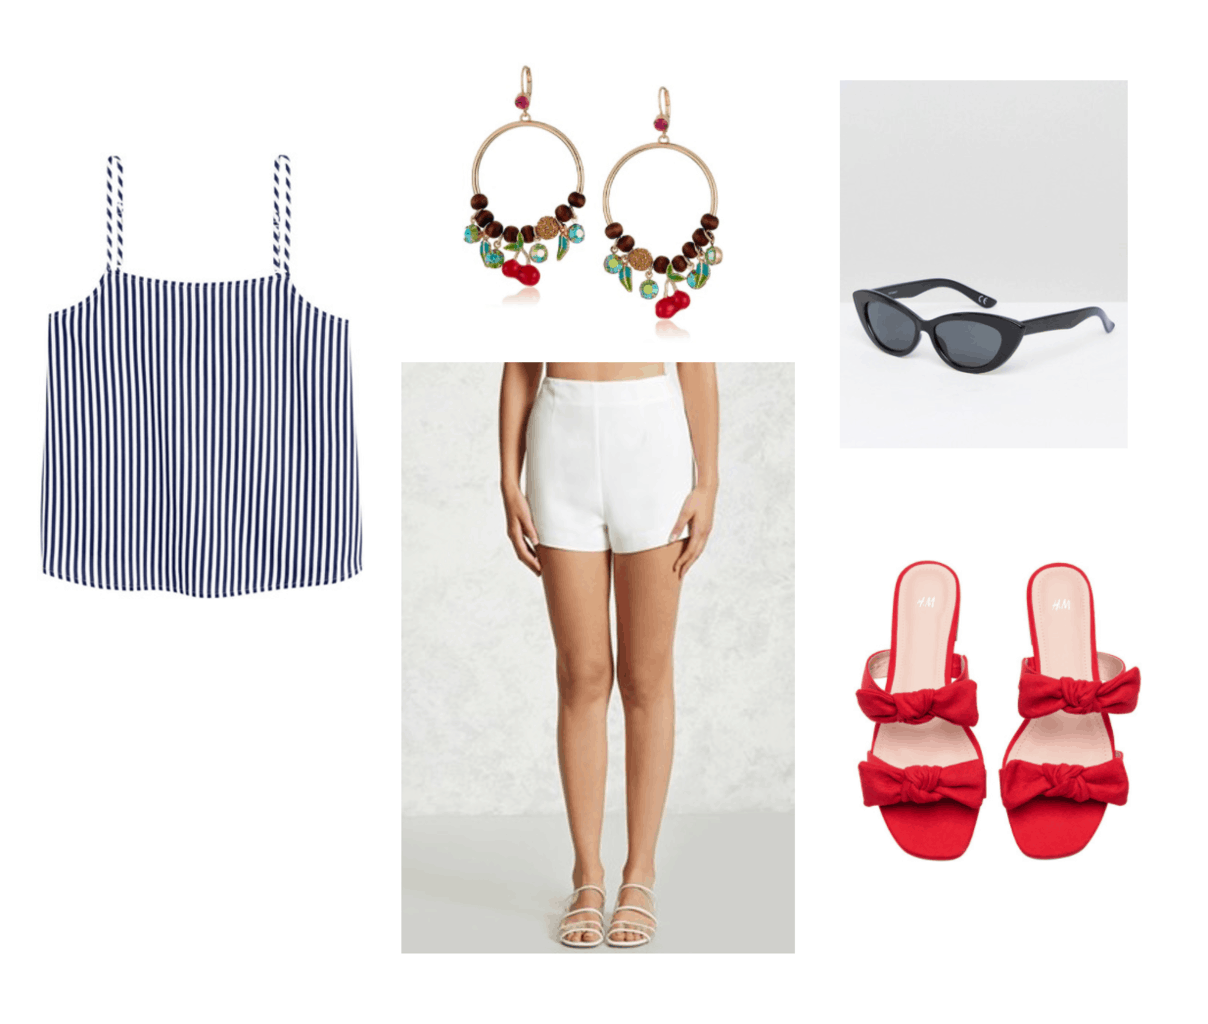 Outfit inspired by Red Velvet's Red Flavor music video: Striped tank, white shorts, red bow sandals, beaded earrings, cat eye sunglasses